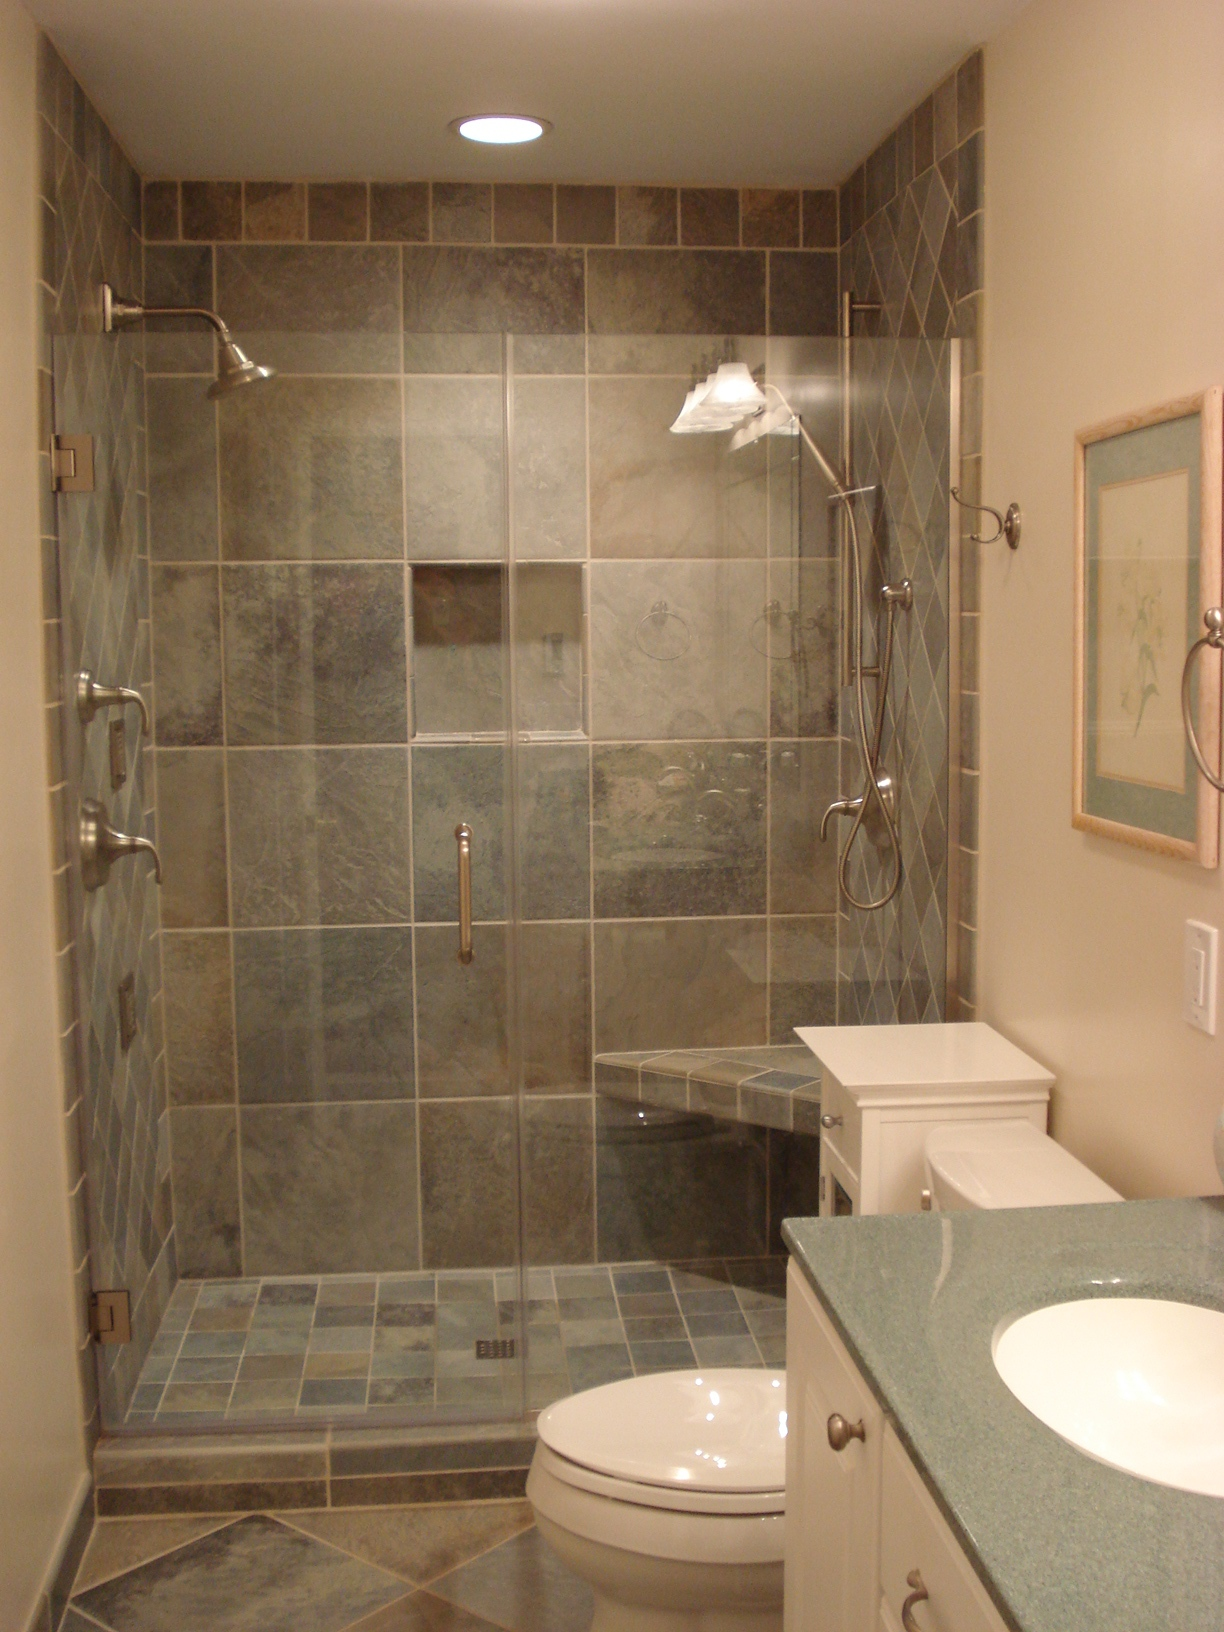 Lifetime design build inc completed projects for Bathroom design and renovations